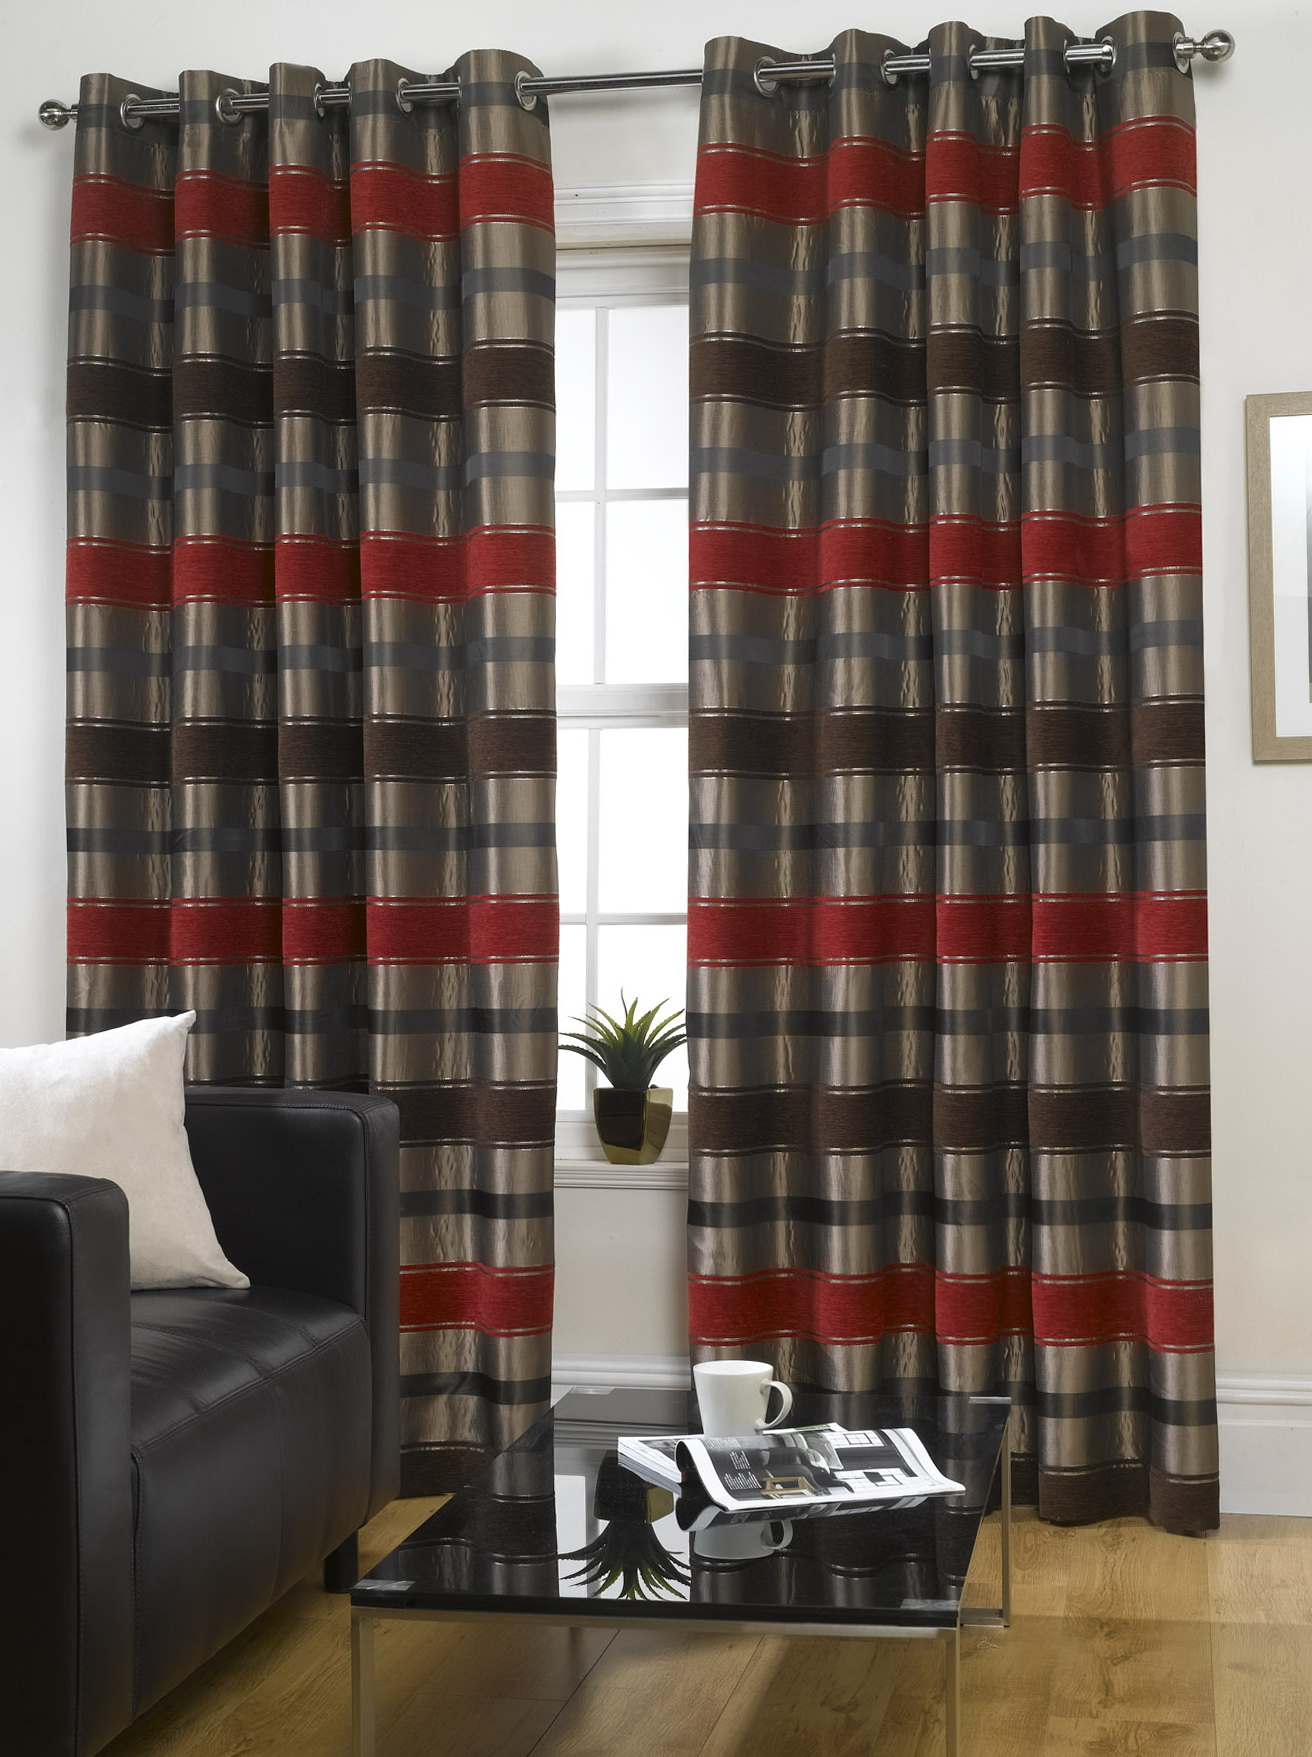 best collections of sound proof curtains - all can download all